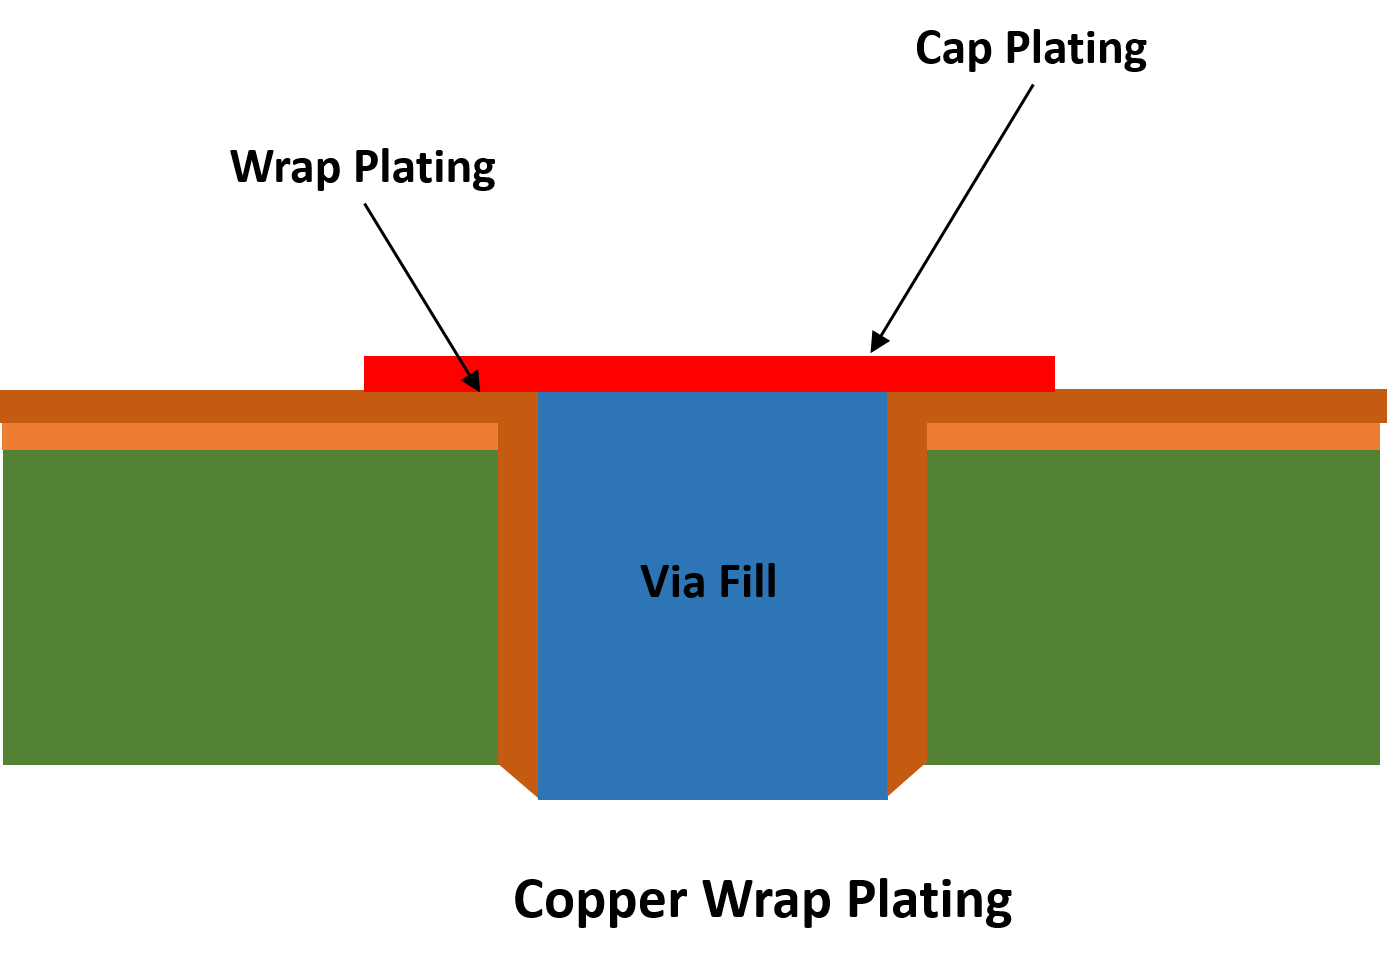 Copper wrap plating structure in PCBs